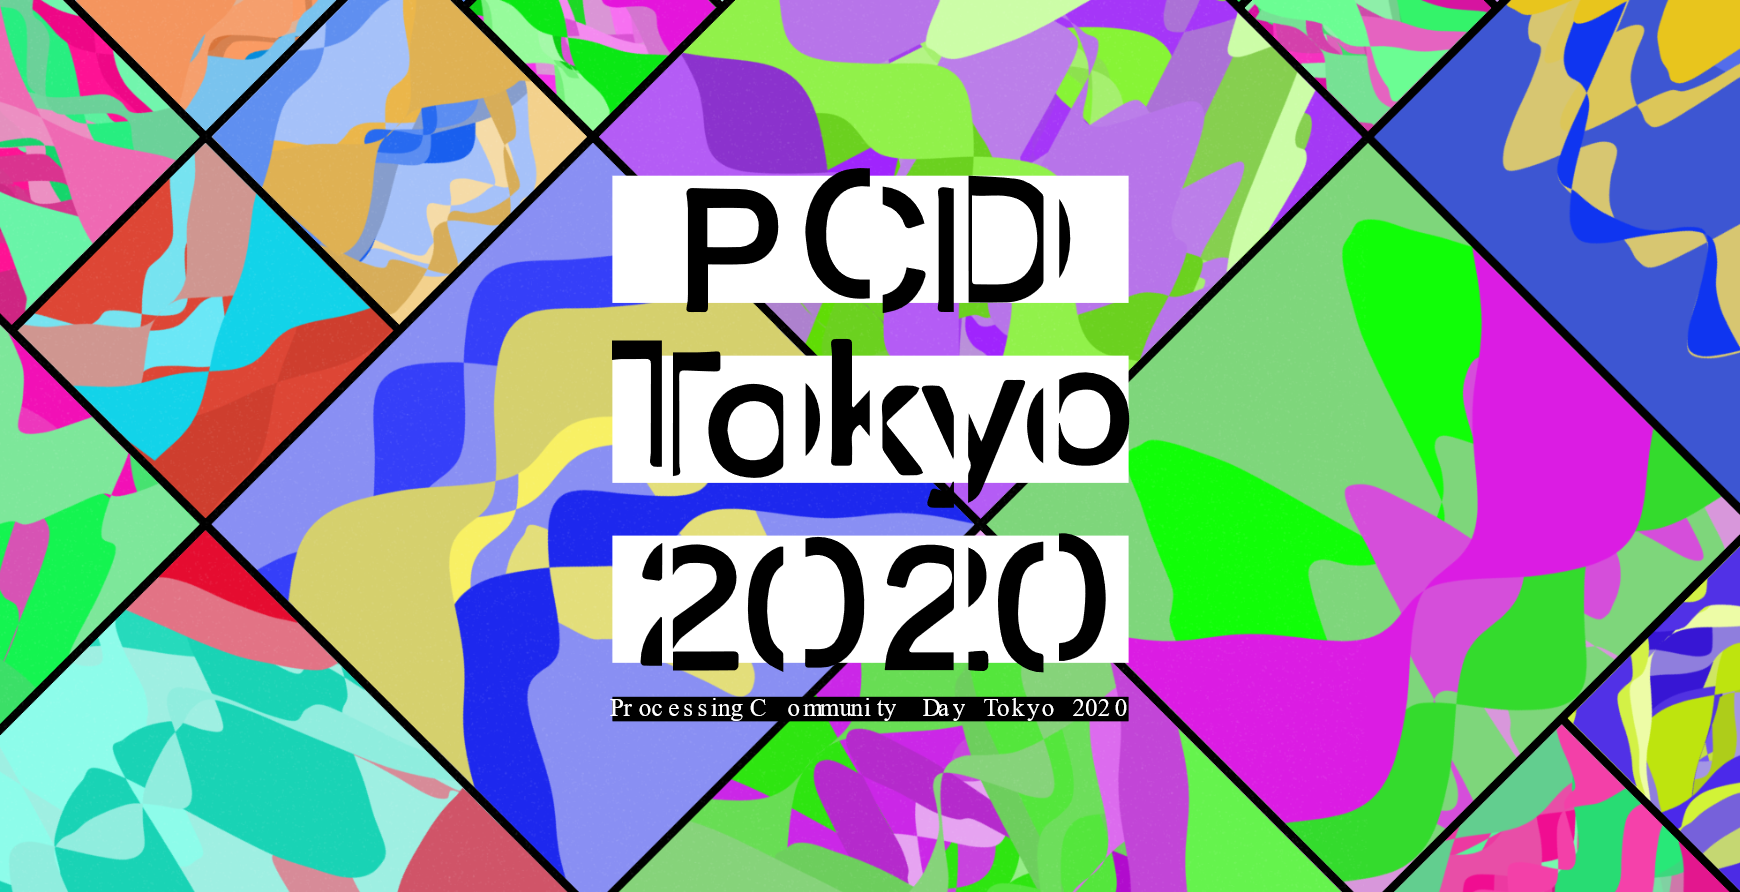 Processing Community Day Tokyo 2020